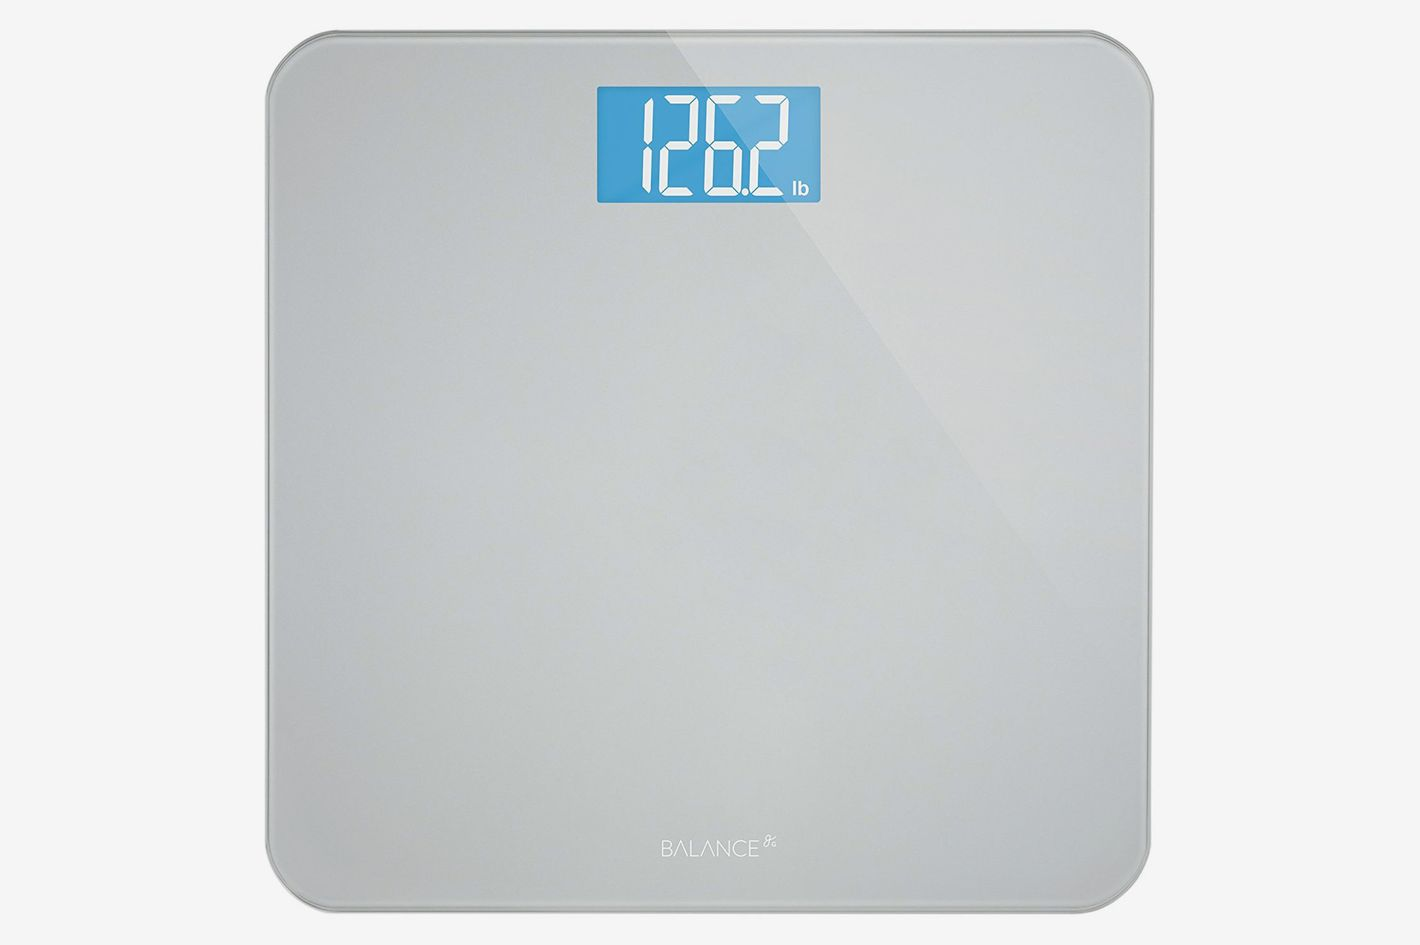 Best digital bathroom scale under $20